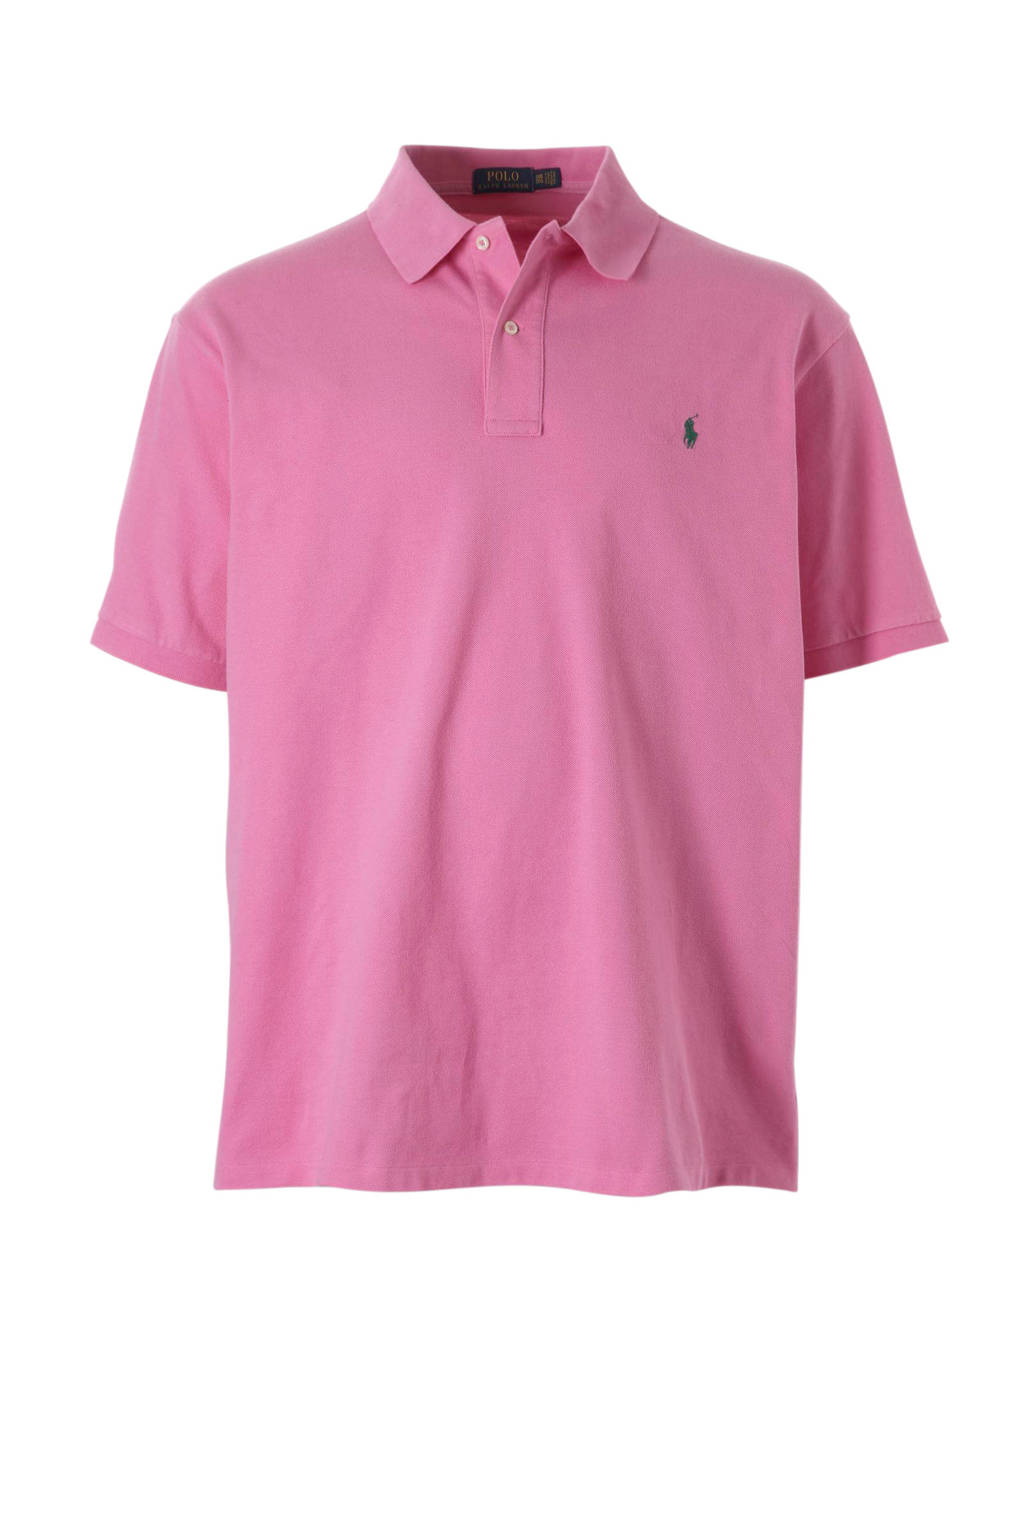 POLO Ralph Lauren Big & Tall +size polo, Roze